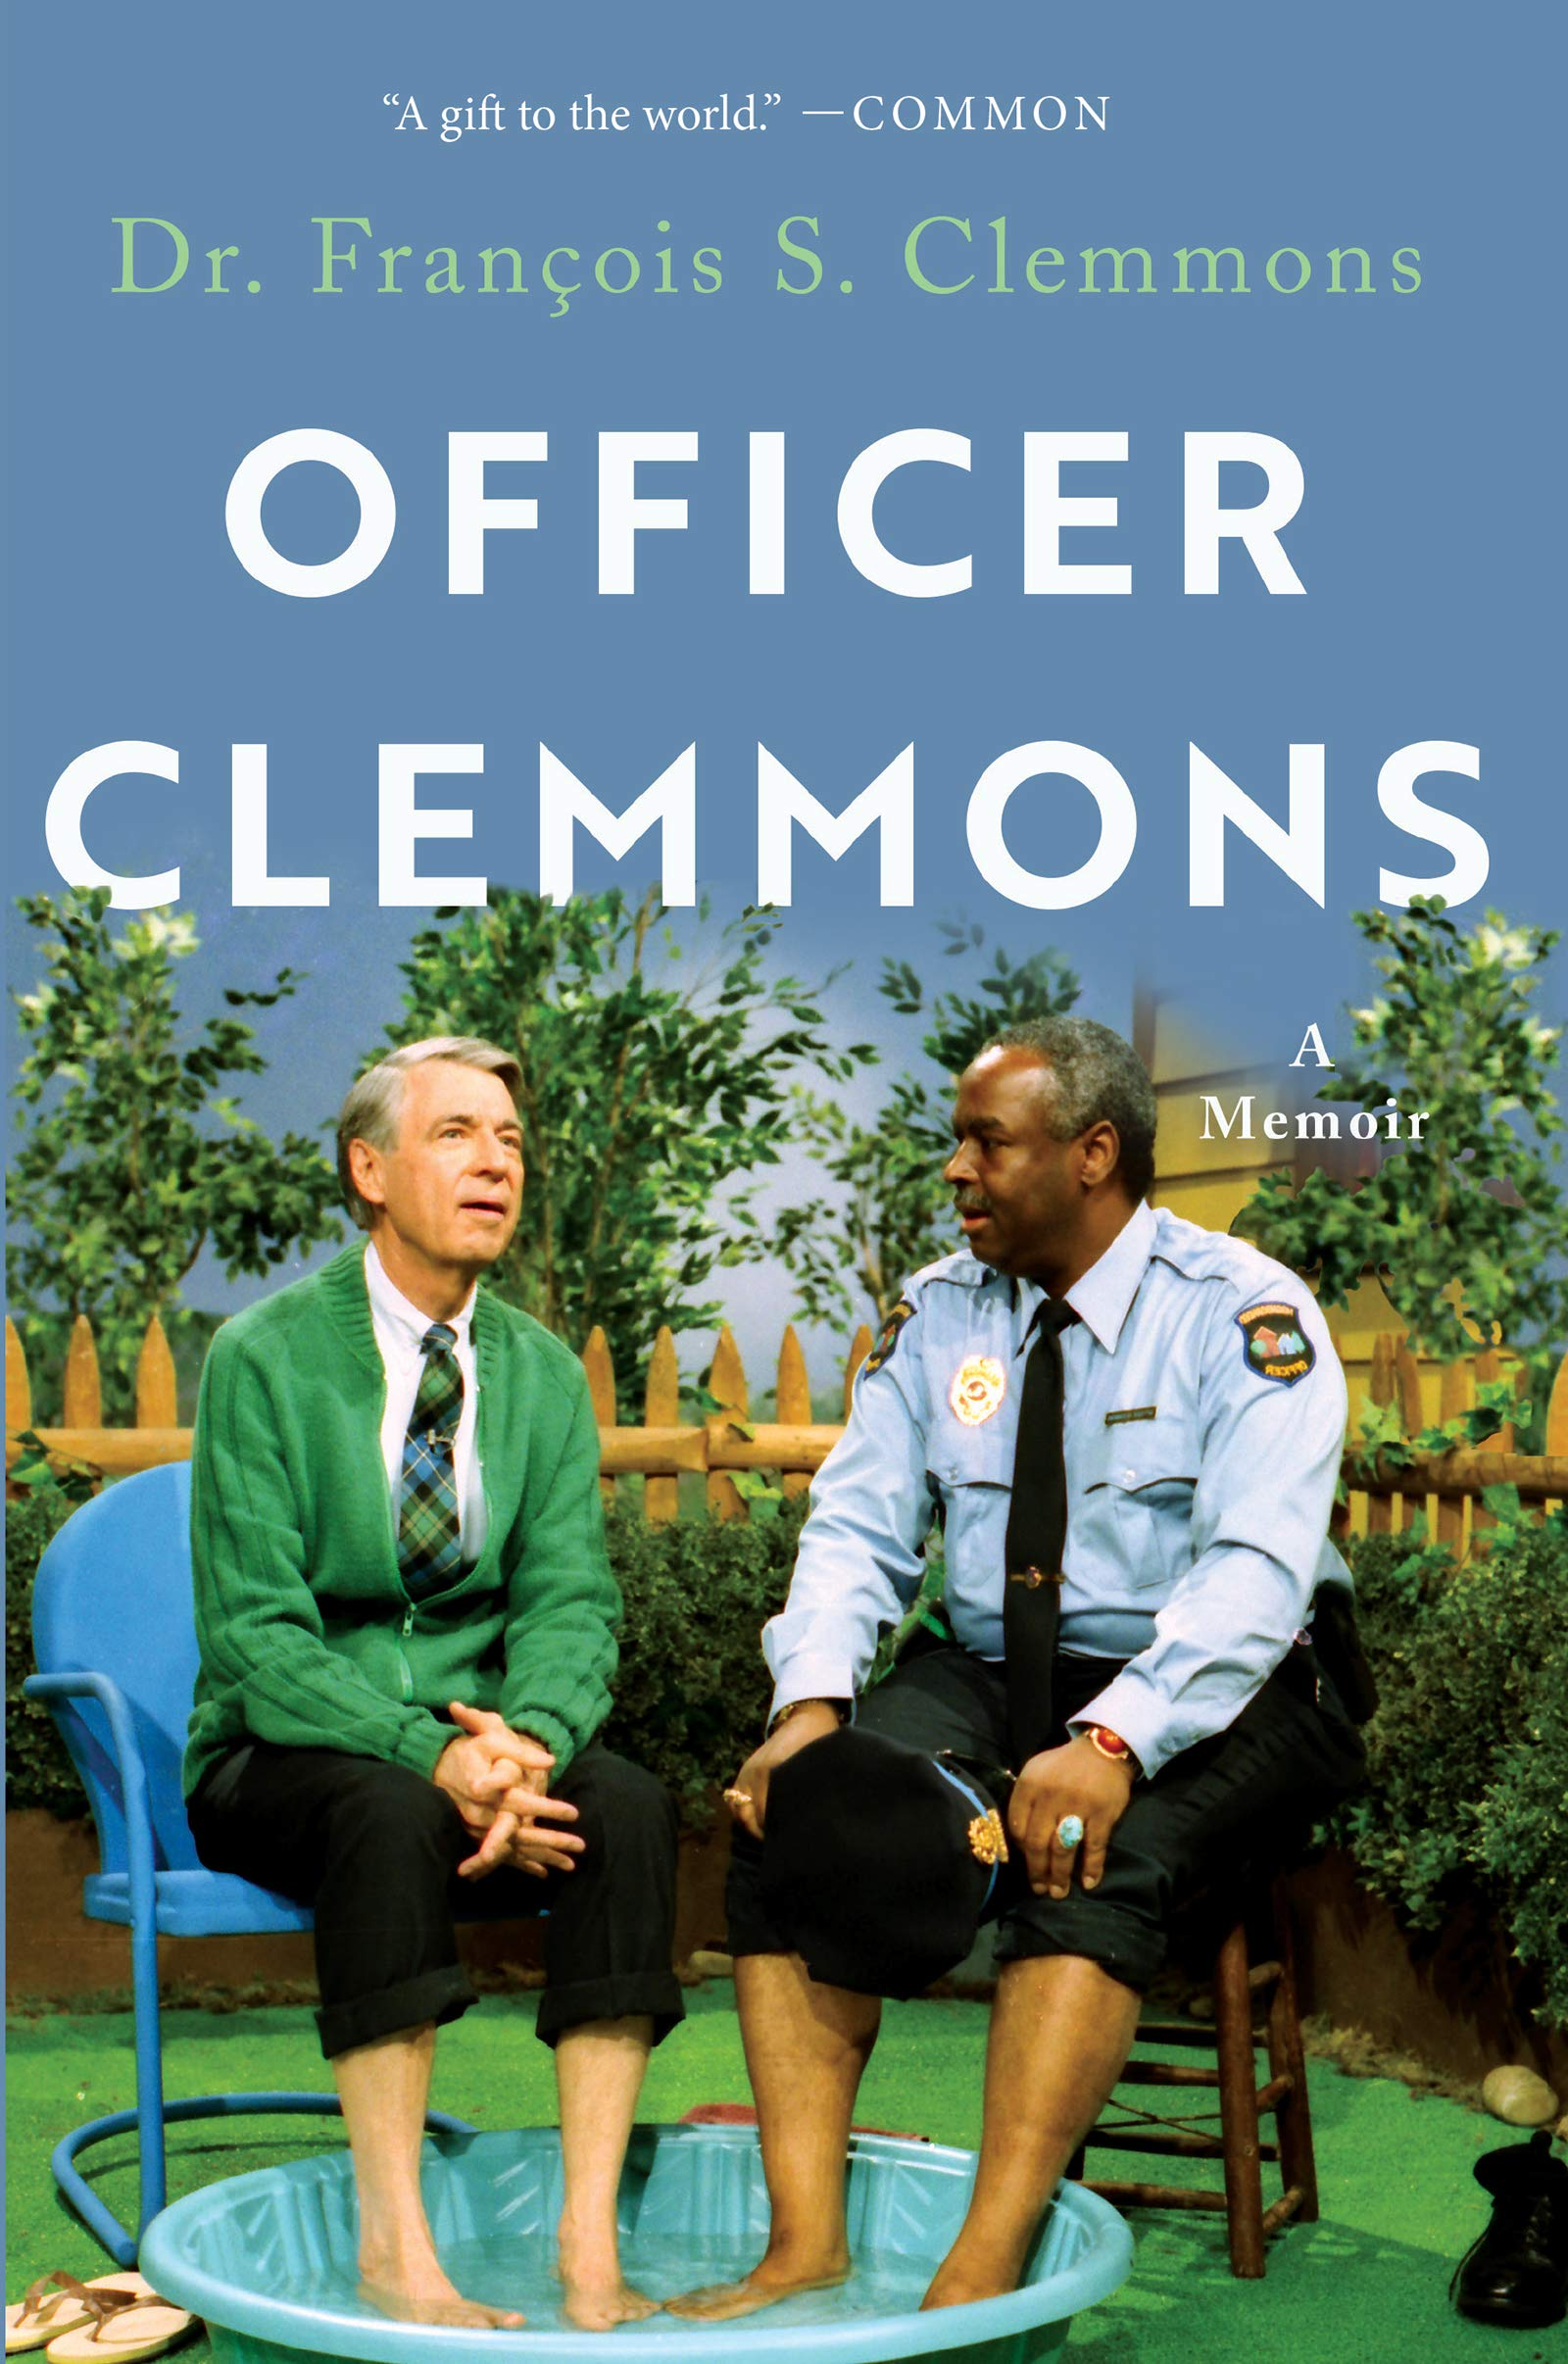 Officer Clemmons A Memoir Clemmons Francois 9781948226707 Amazon Com Books